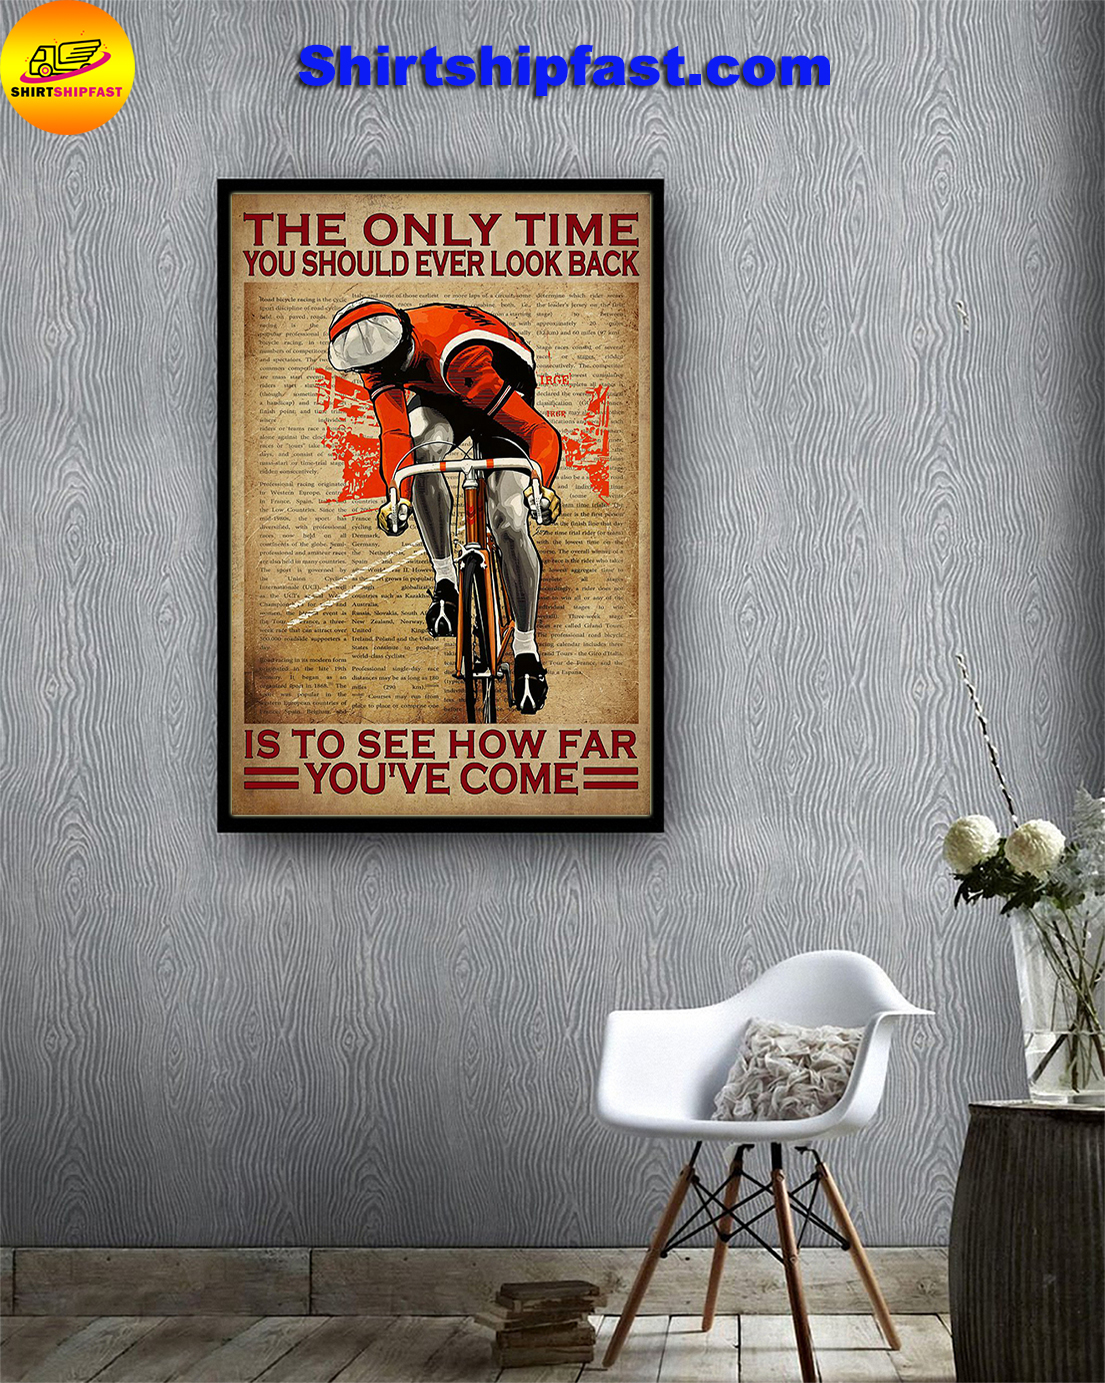 Cycle The only time you should ever look back poster - Picture 1